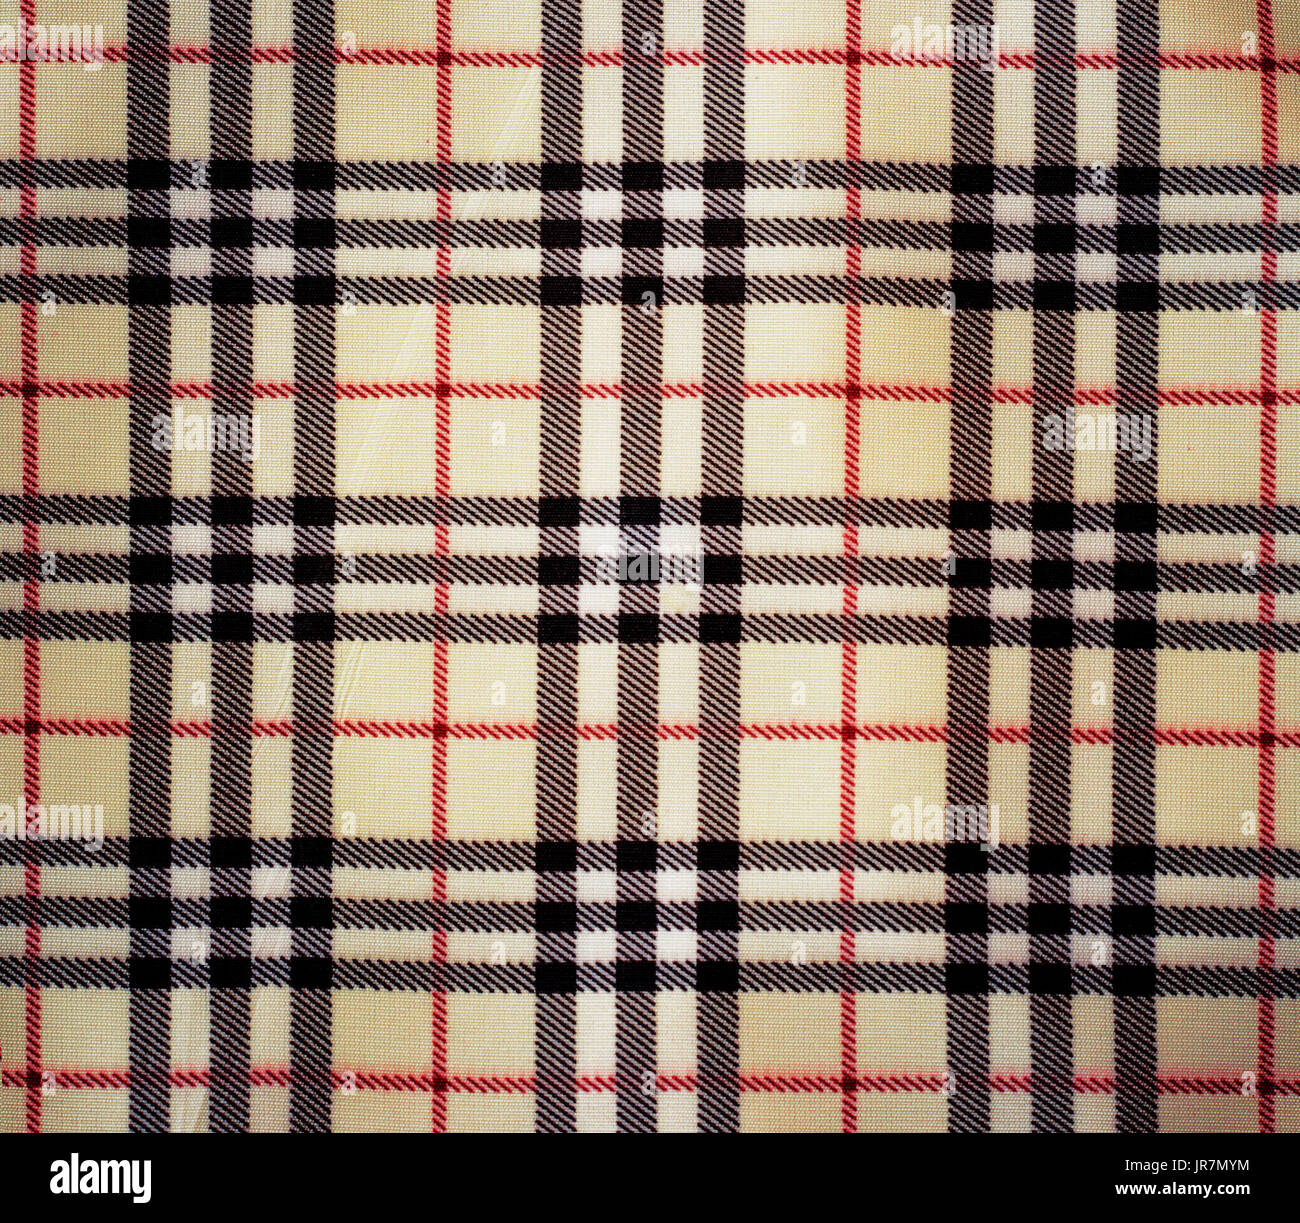 Background Checkered Cloth Fabric Red Black White Stock Photo